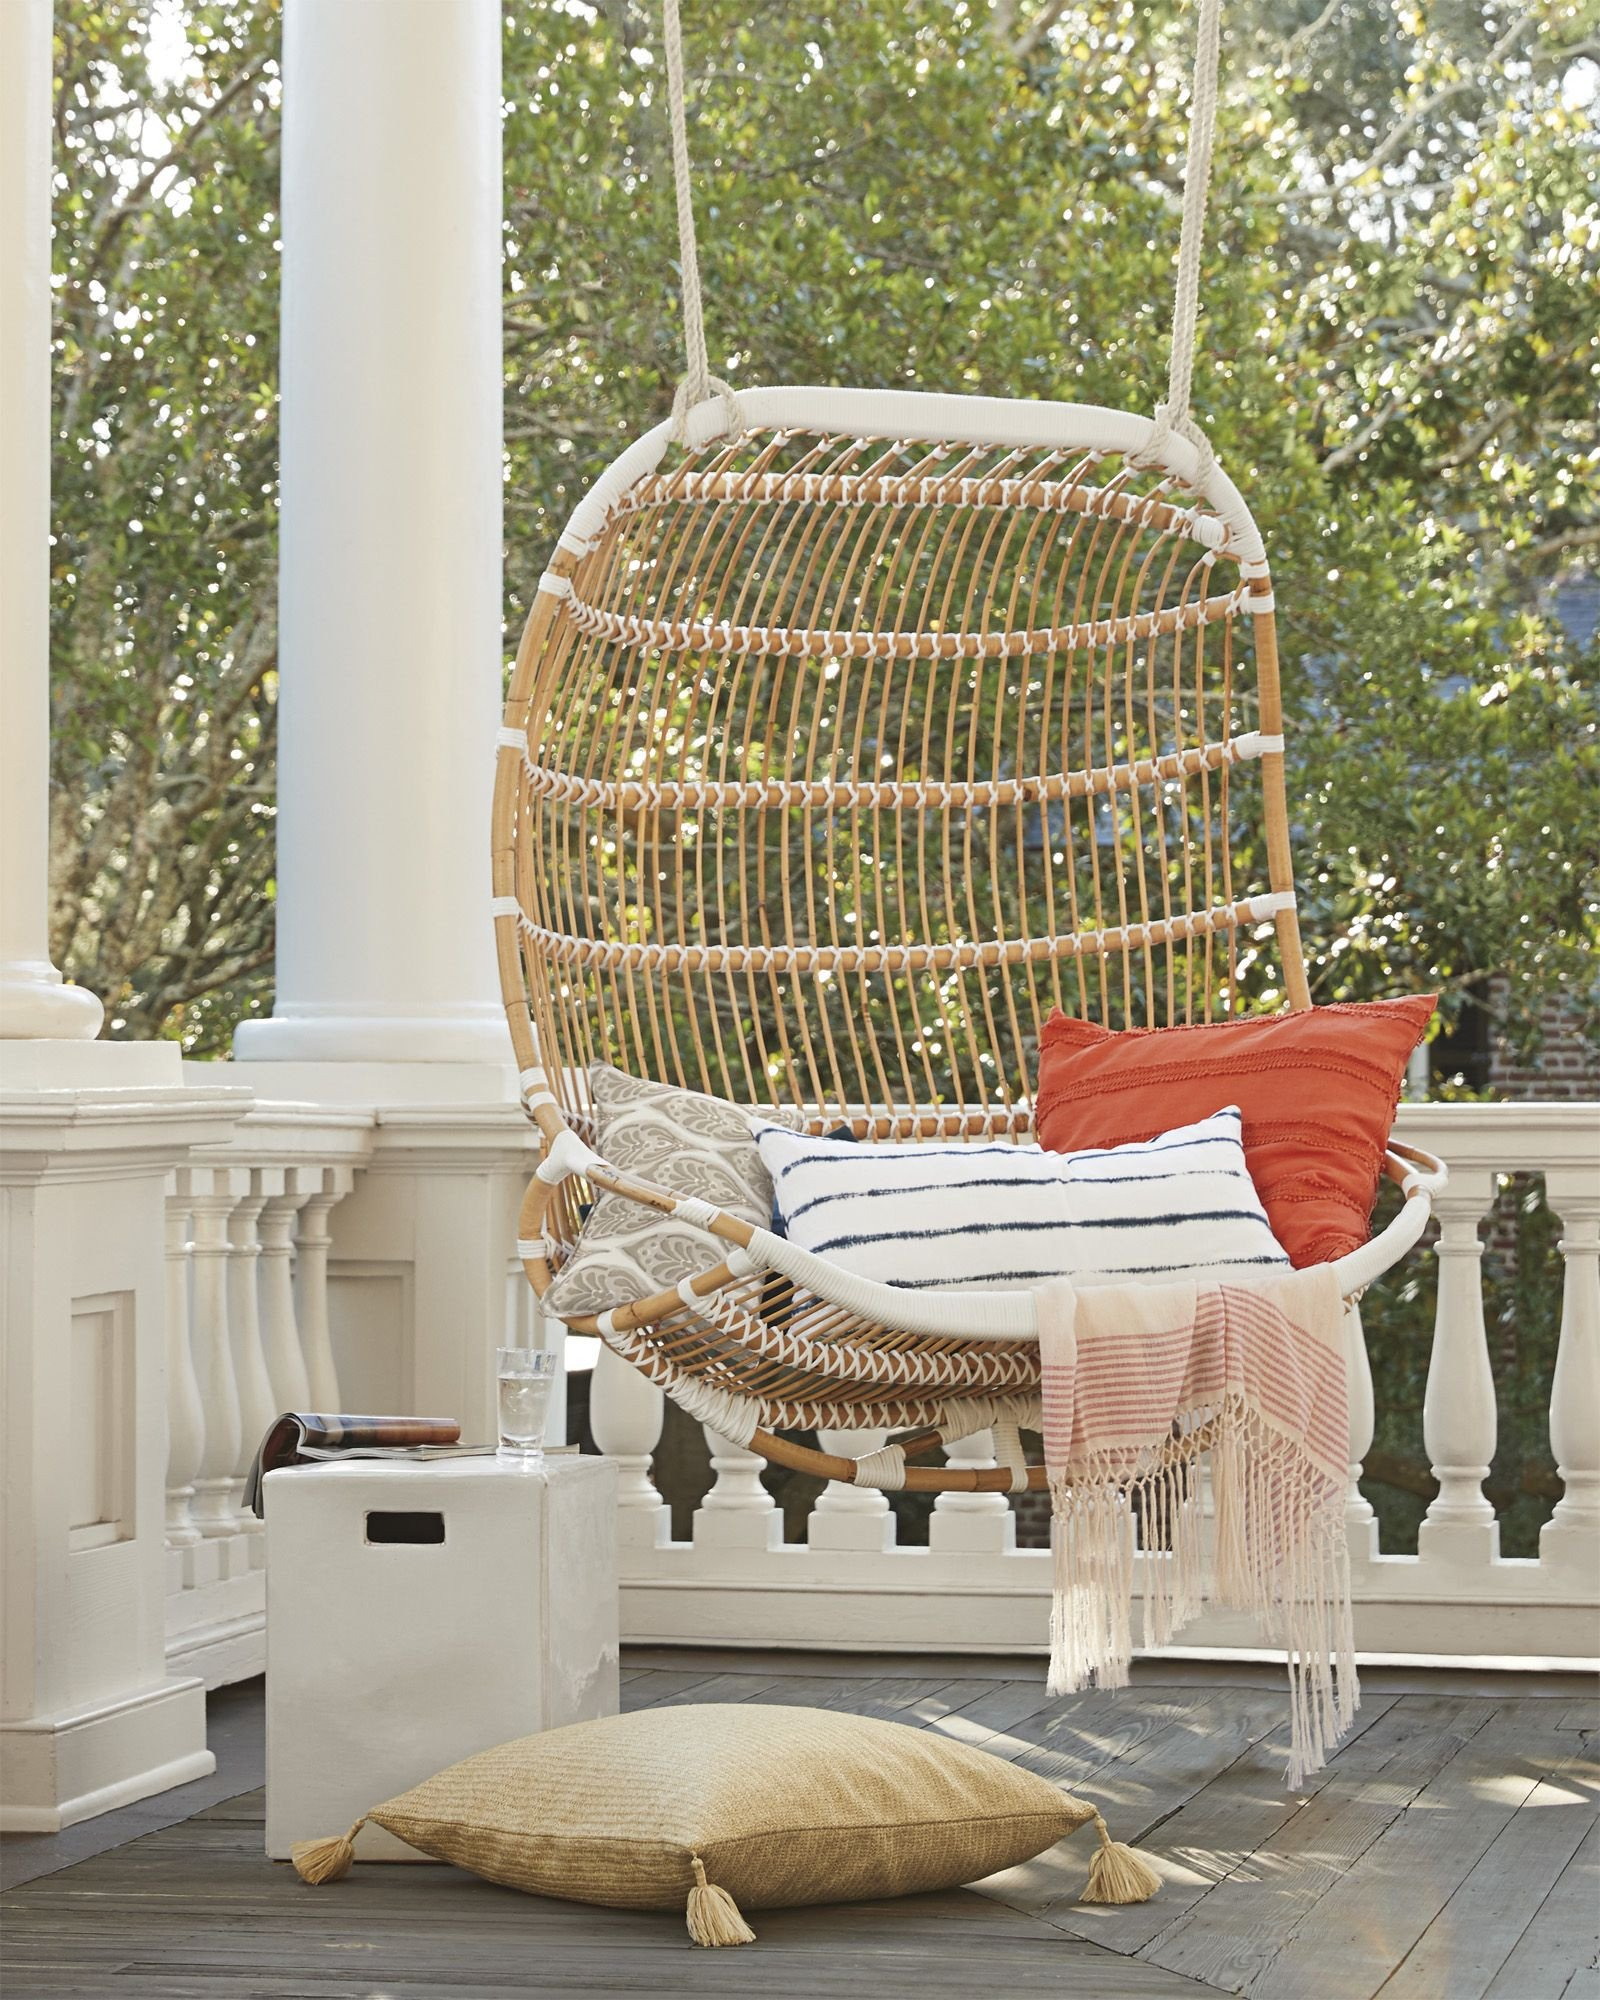 Hanging Chairs for Bedroom Fresh Serena & Lily Double Hanging Rattan Chair